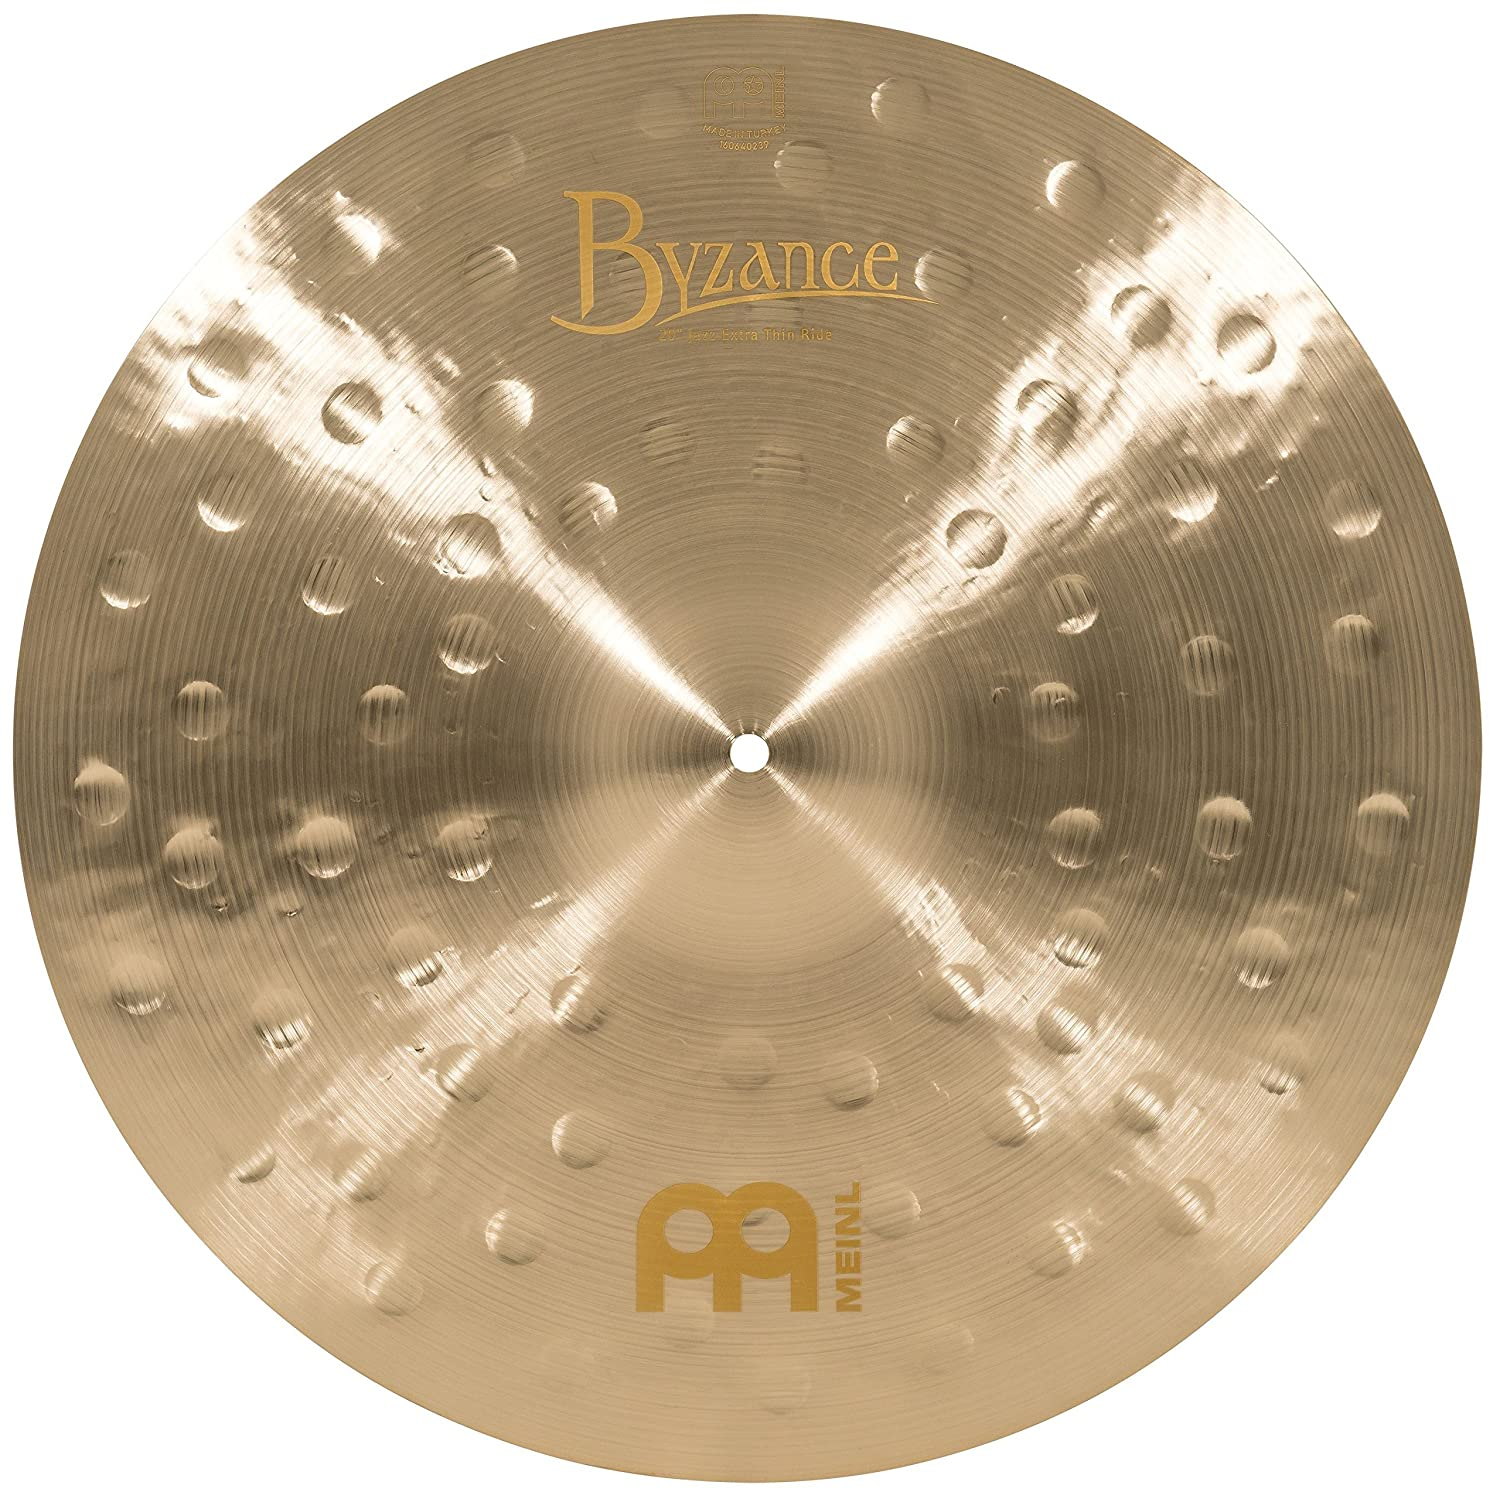 Meinl Cymbals B20JETR Byzance 20-Inch Jazz Extra Thin Ride Cymbal (VIDEO) Meinl USA L.C.